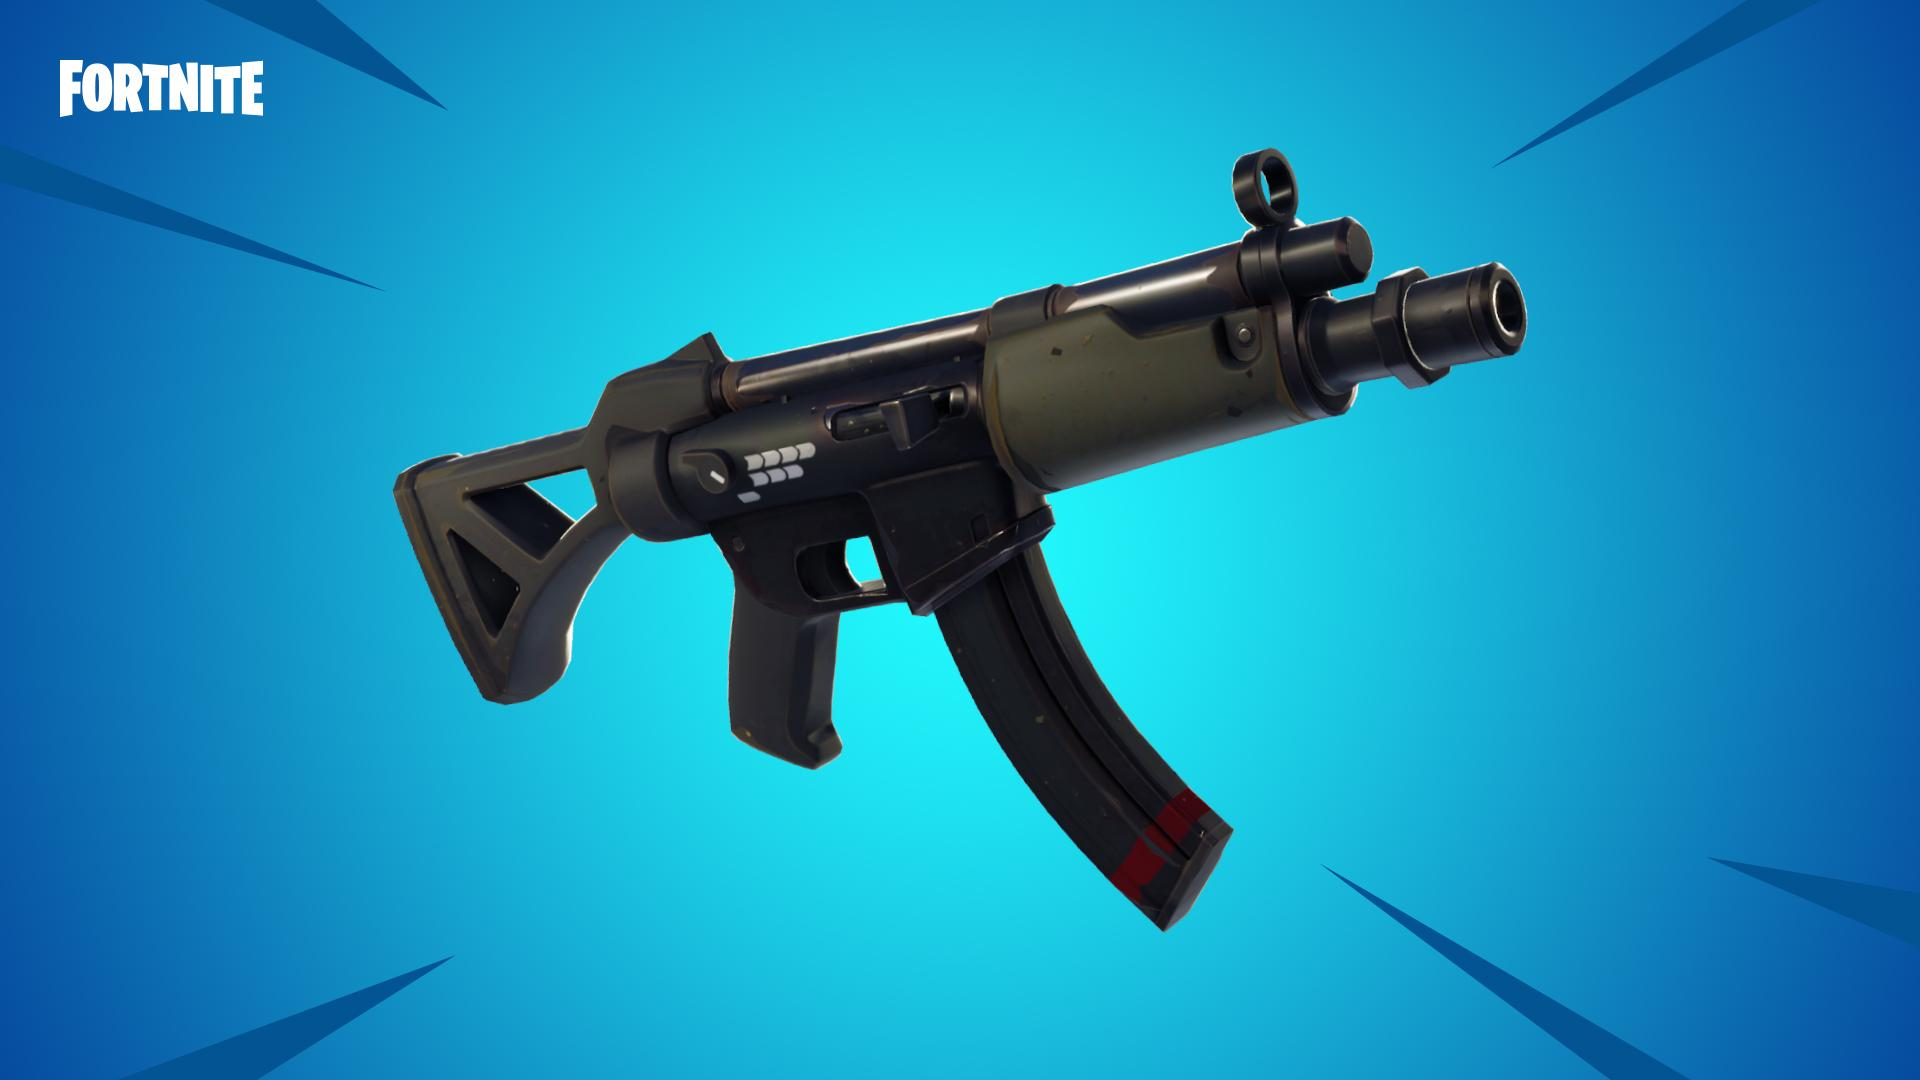 Fortnite V5.0 Content Update Adds a Couple of New Weapons